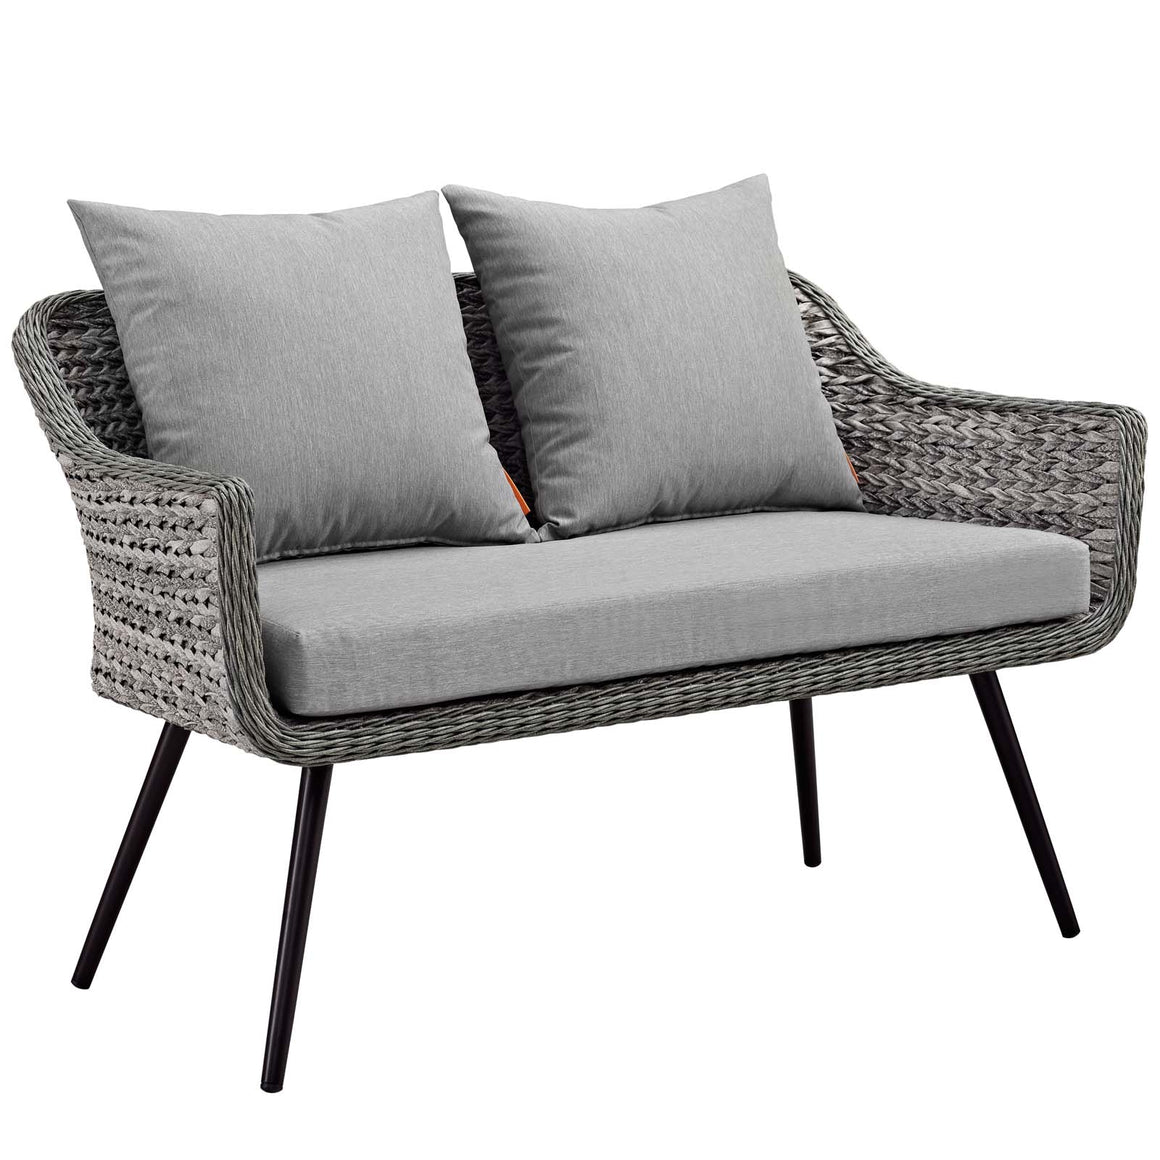 ENDEAVOR OUTDOOR PATIO WICKER RATTAN LOVESEAT IN GRAY GRAY